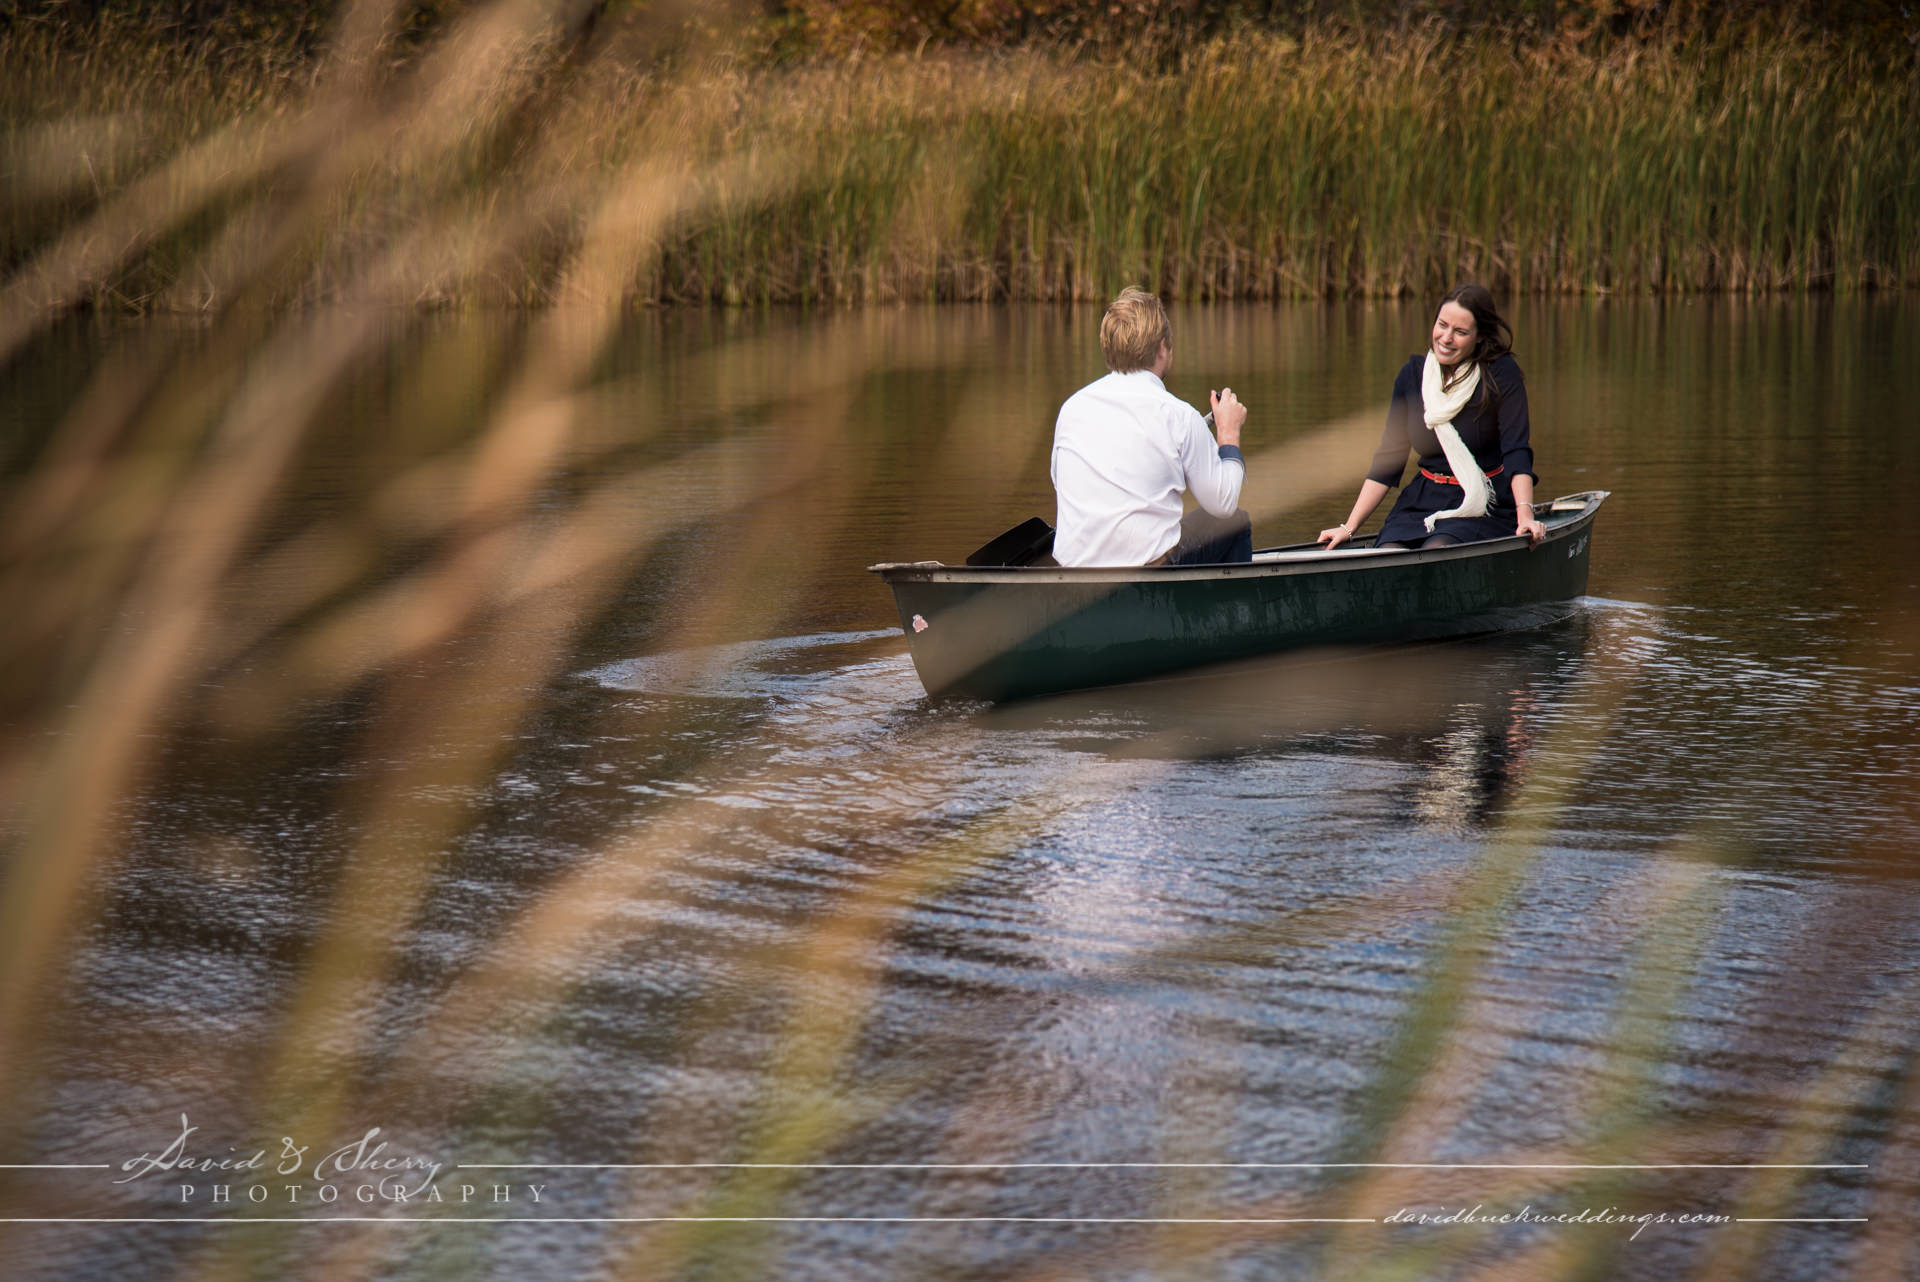 Thornbury_Heathcote_Engagement_Photos_002